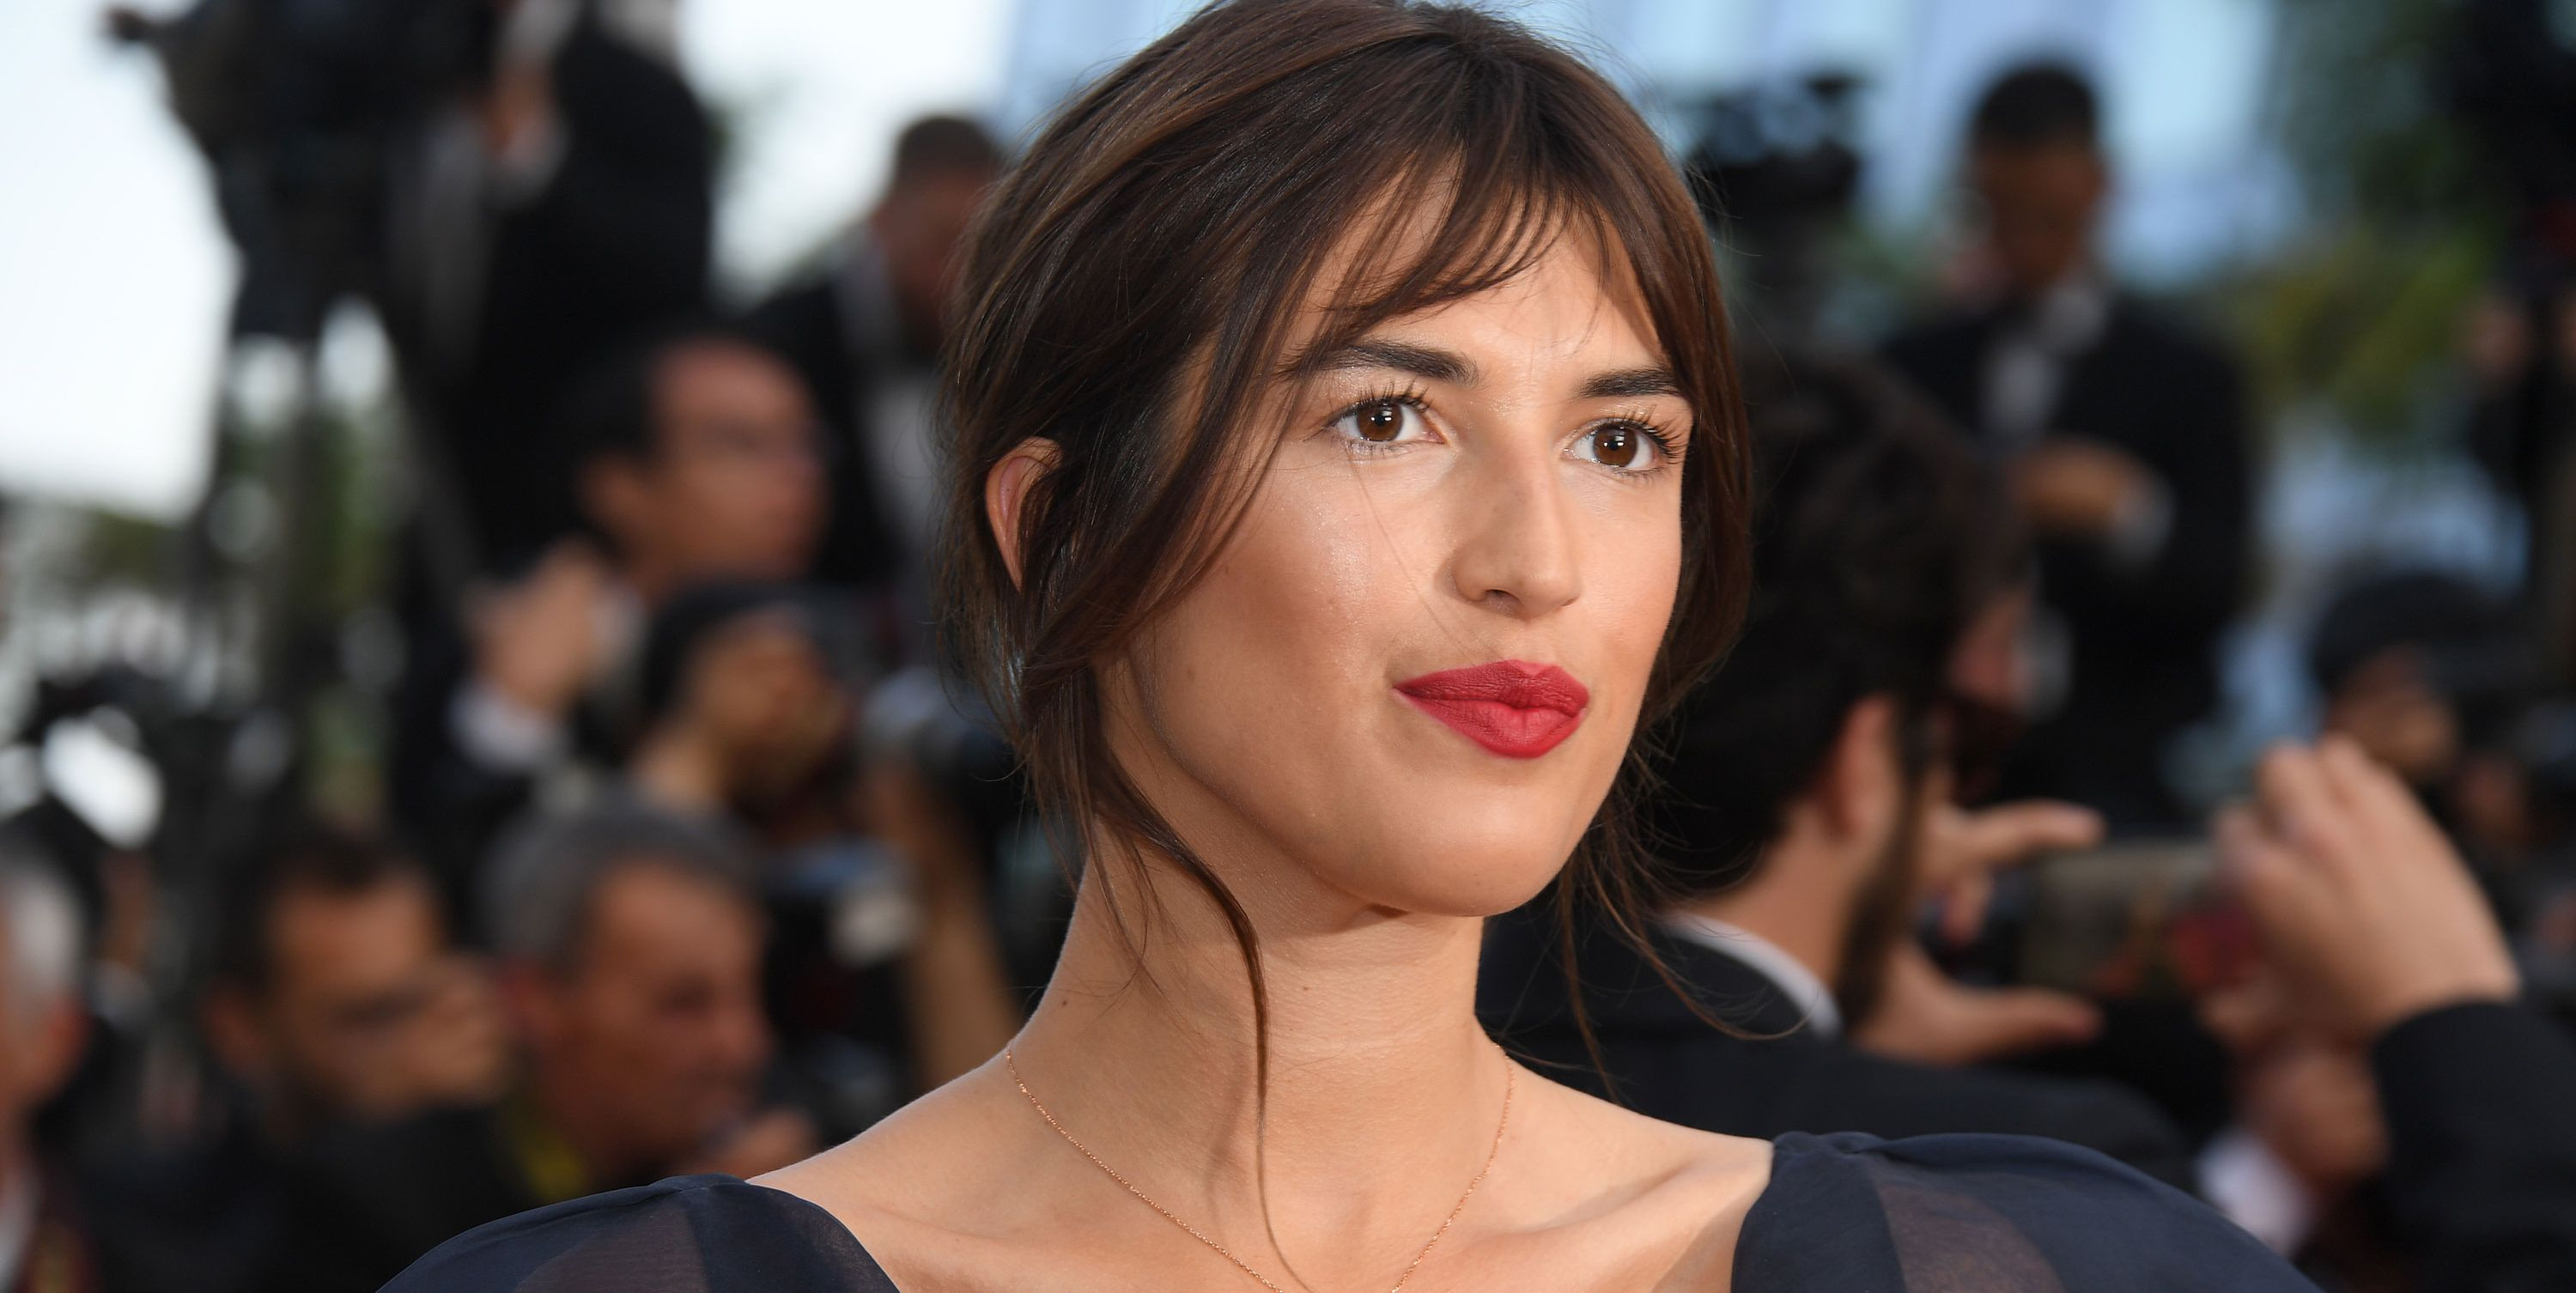 Jeanne Damas launches Rouje lipstick